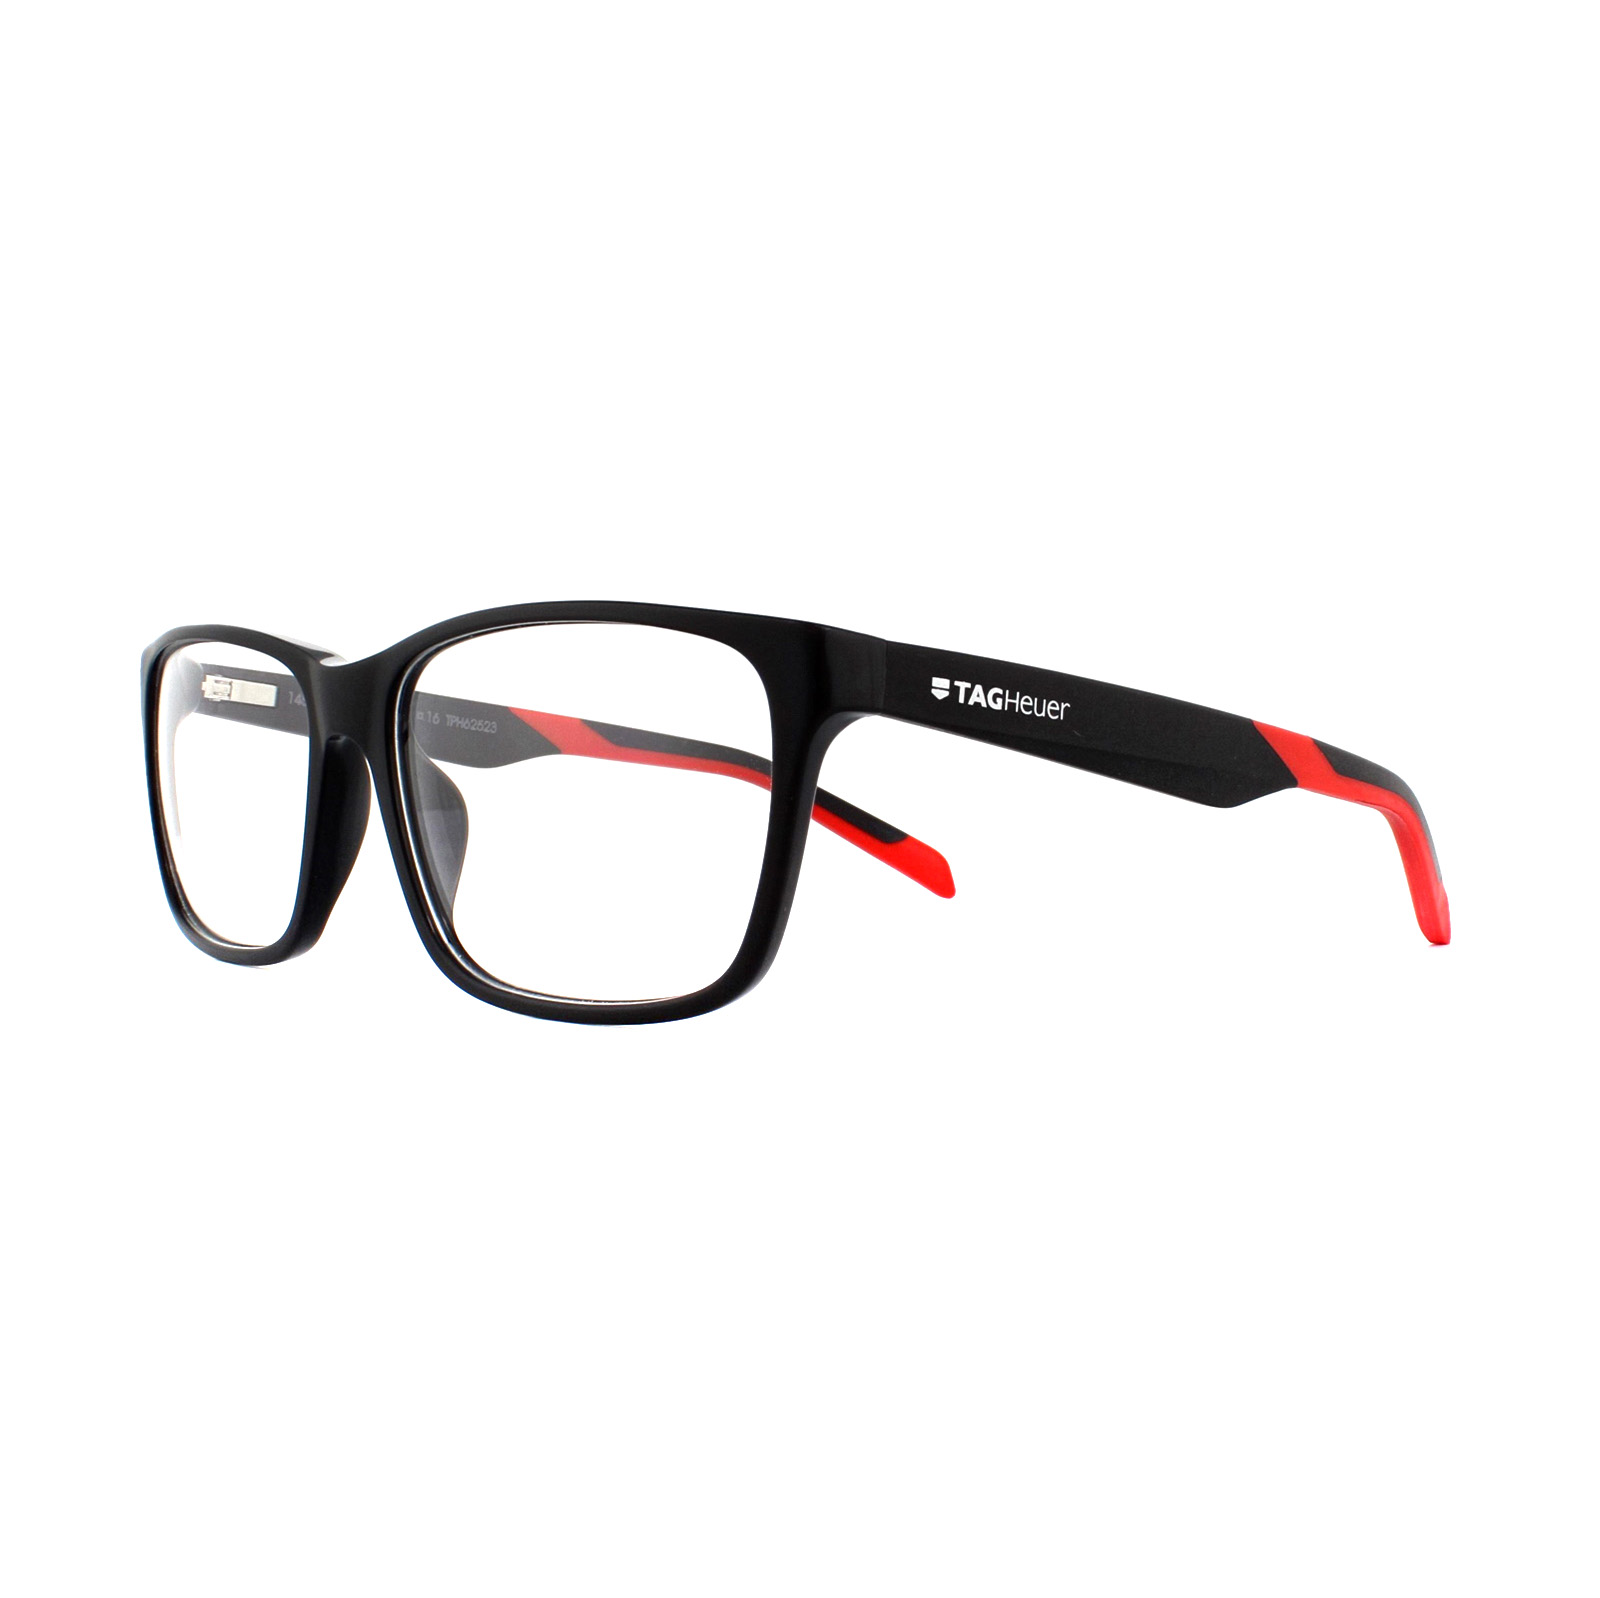 Details about Tag Heuer Glasses Frames B-Urban TH0552 005 Black & Red